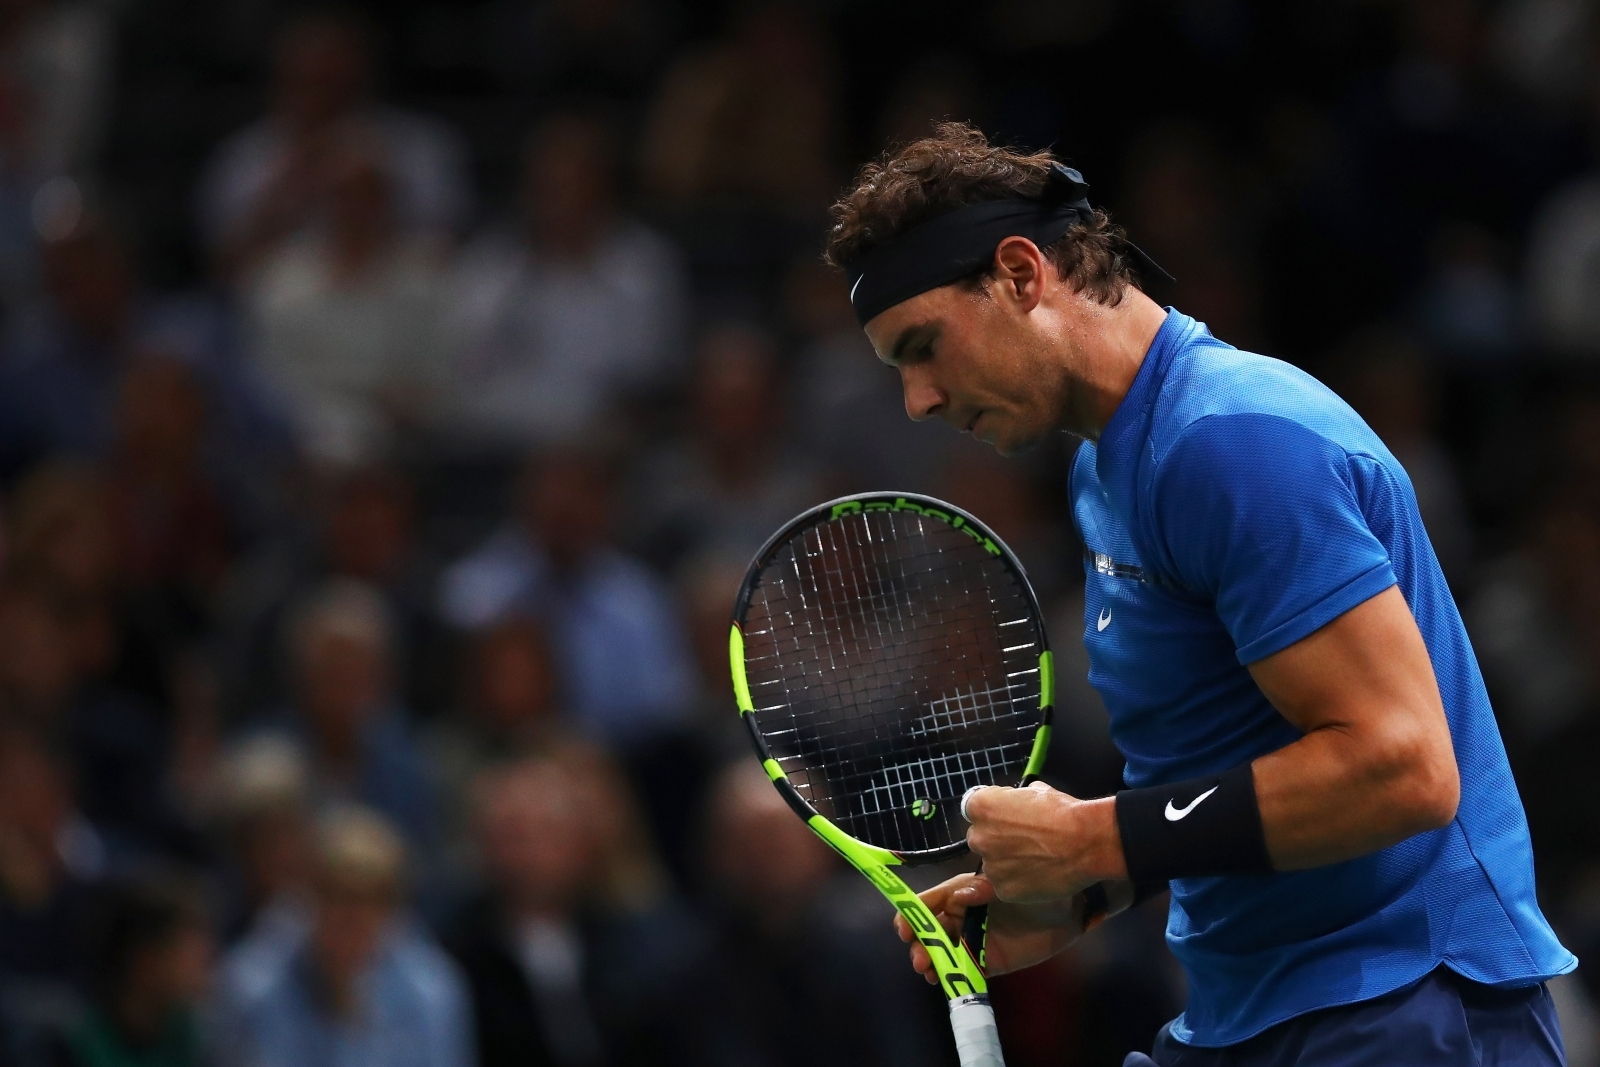 Rafael Nadal secures No. 1 ranking by advancing at Paris Masters